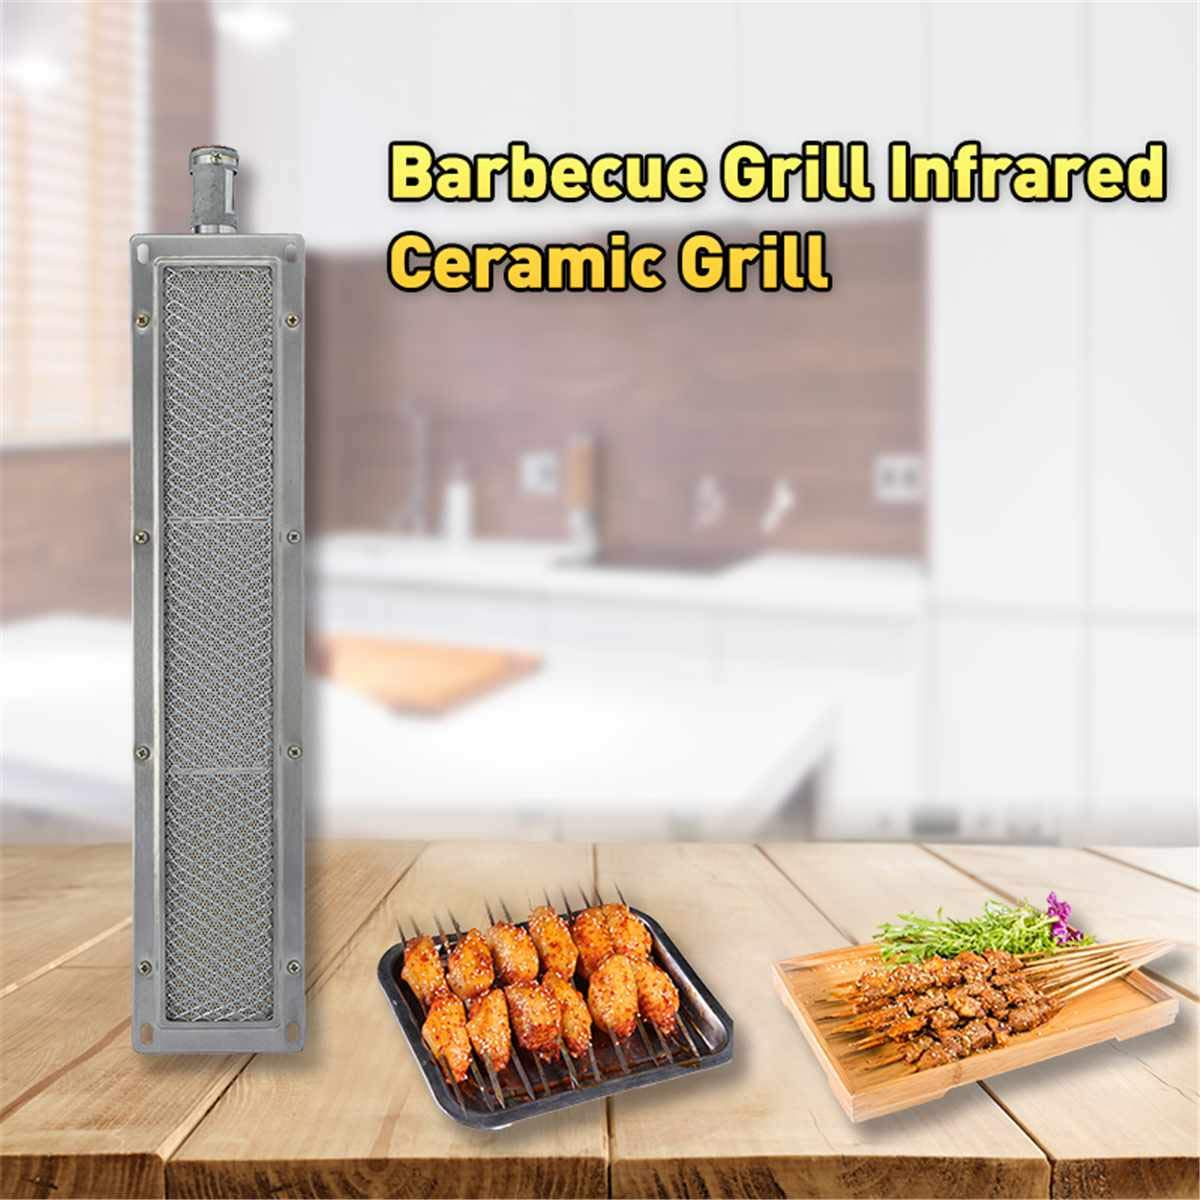 BBQ Barbecue Infrared Ceramic Grill Stainless Steel Gas Burner Stove, Infrared BBQ Grills - Infrared Barbecue, Stainless Steel Barbecue Grill, Infrared Grill Burner, Ceramic Burner Grill by BAPES